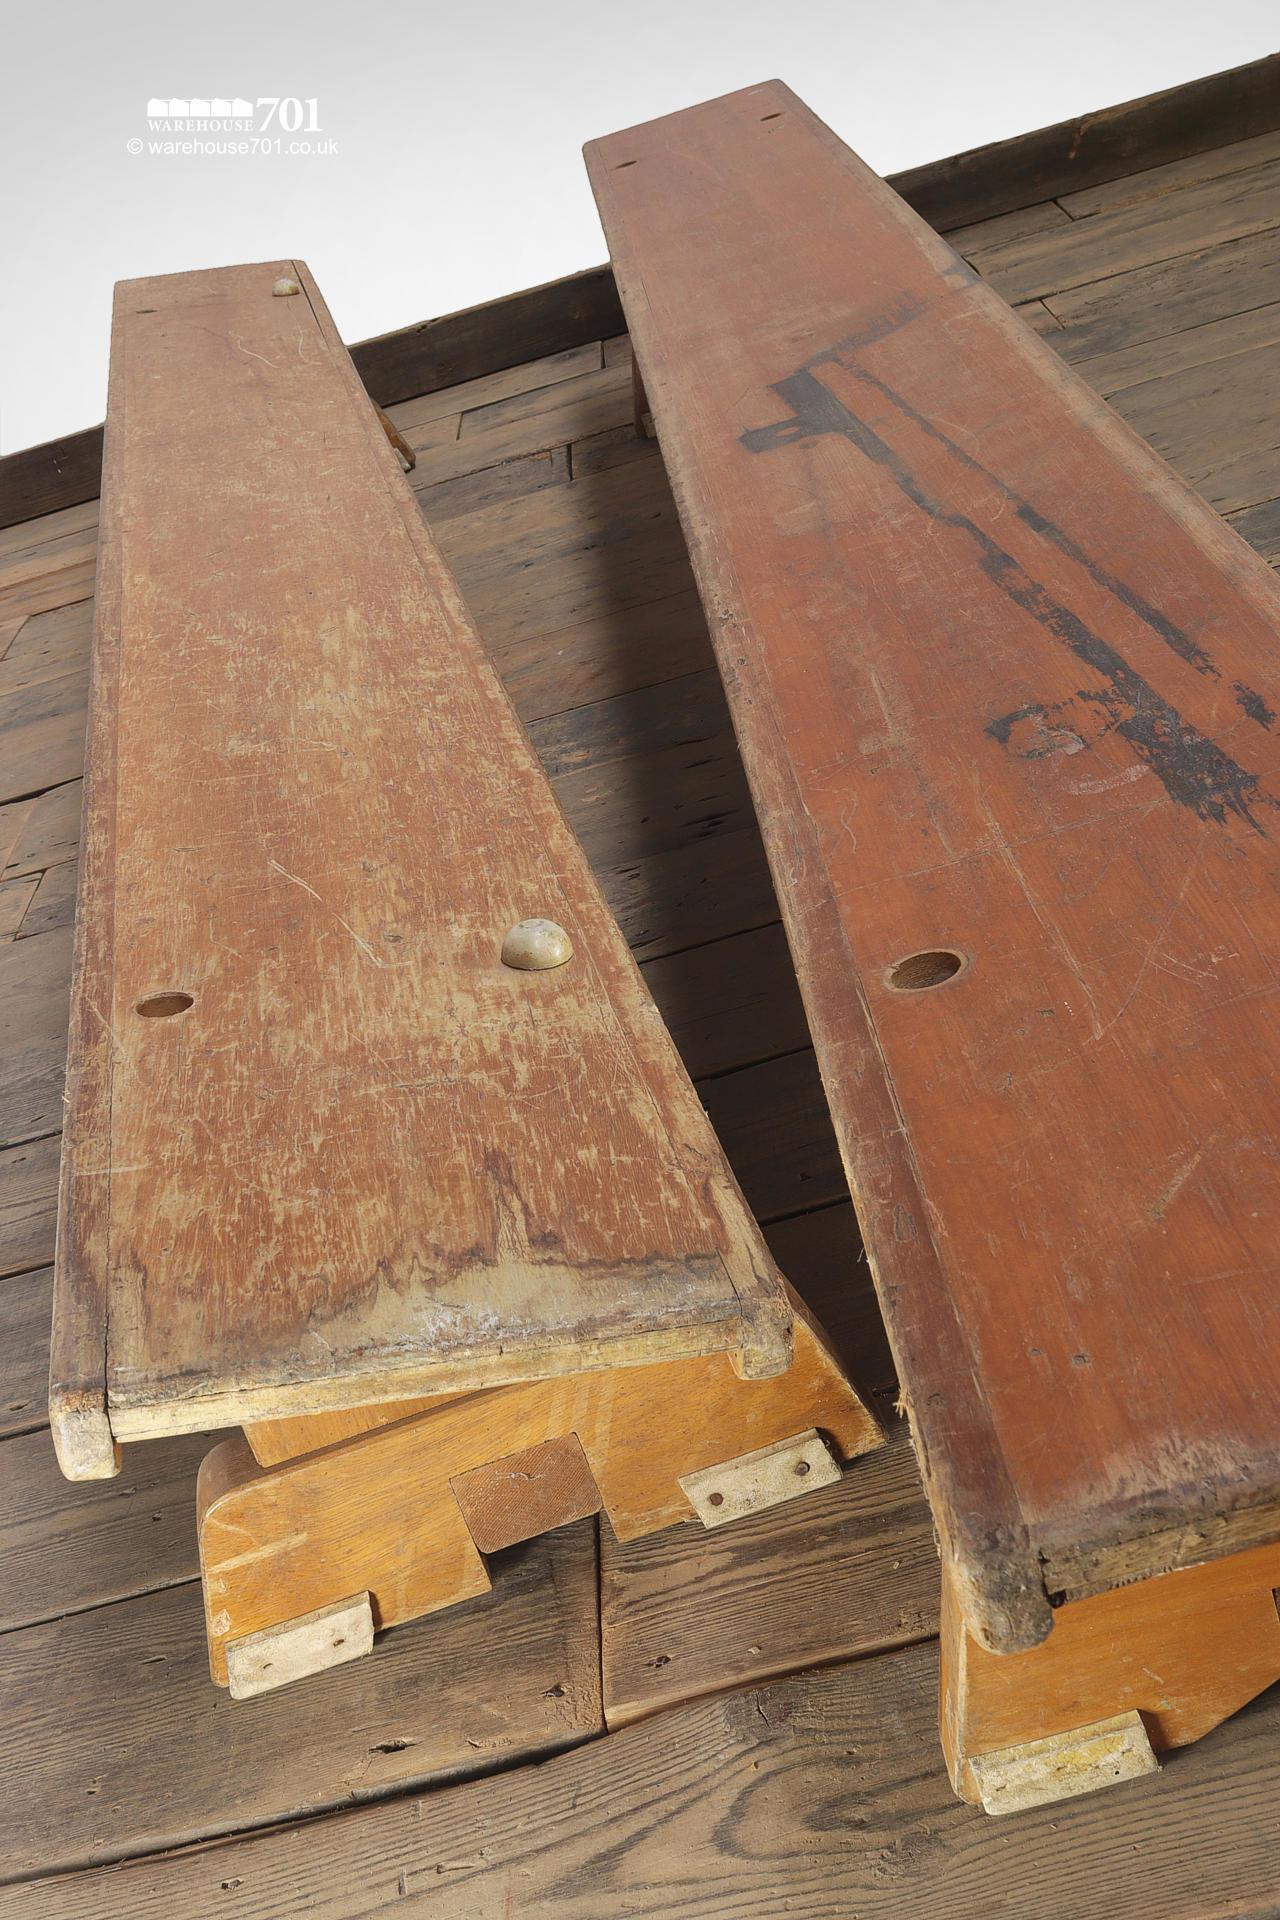 Two Salvaged Gymnasium or Locker Room Benches #6